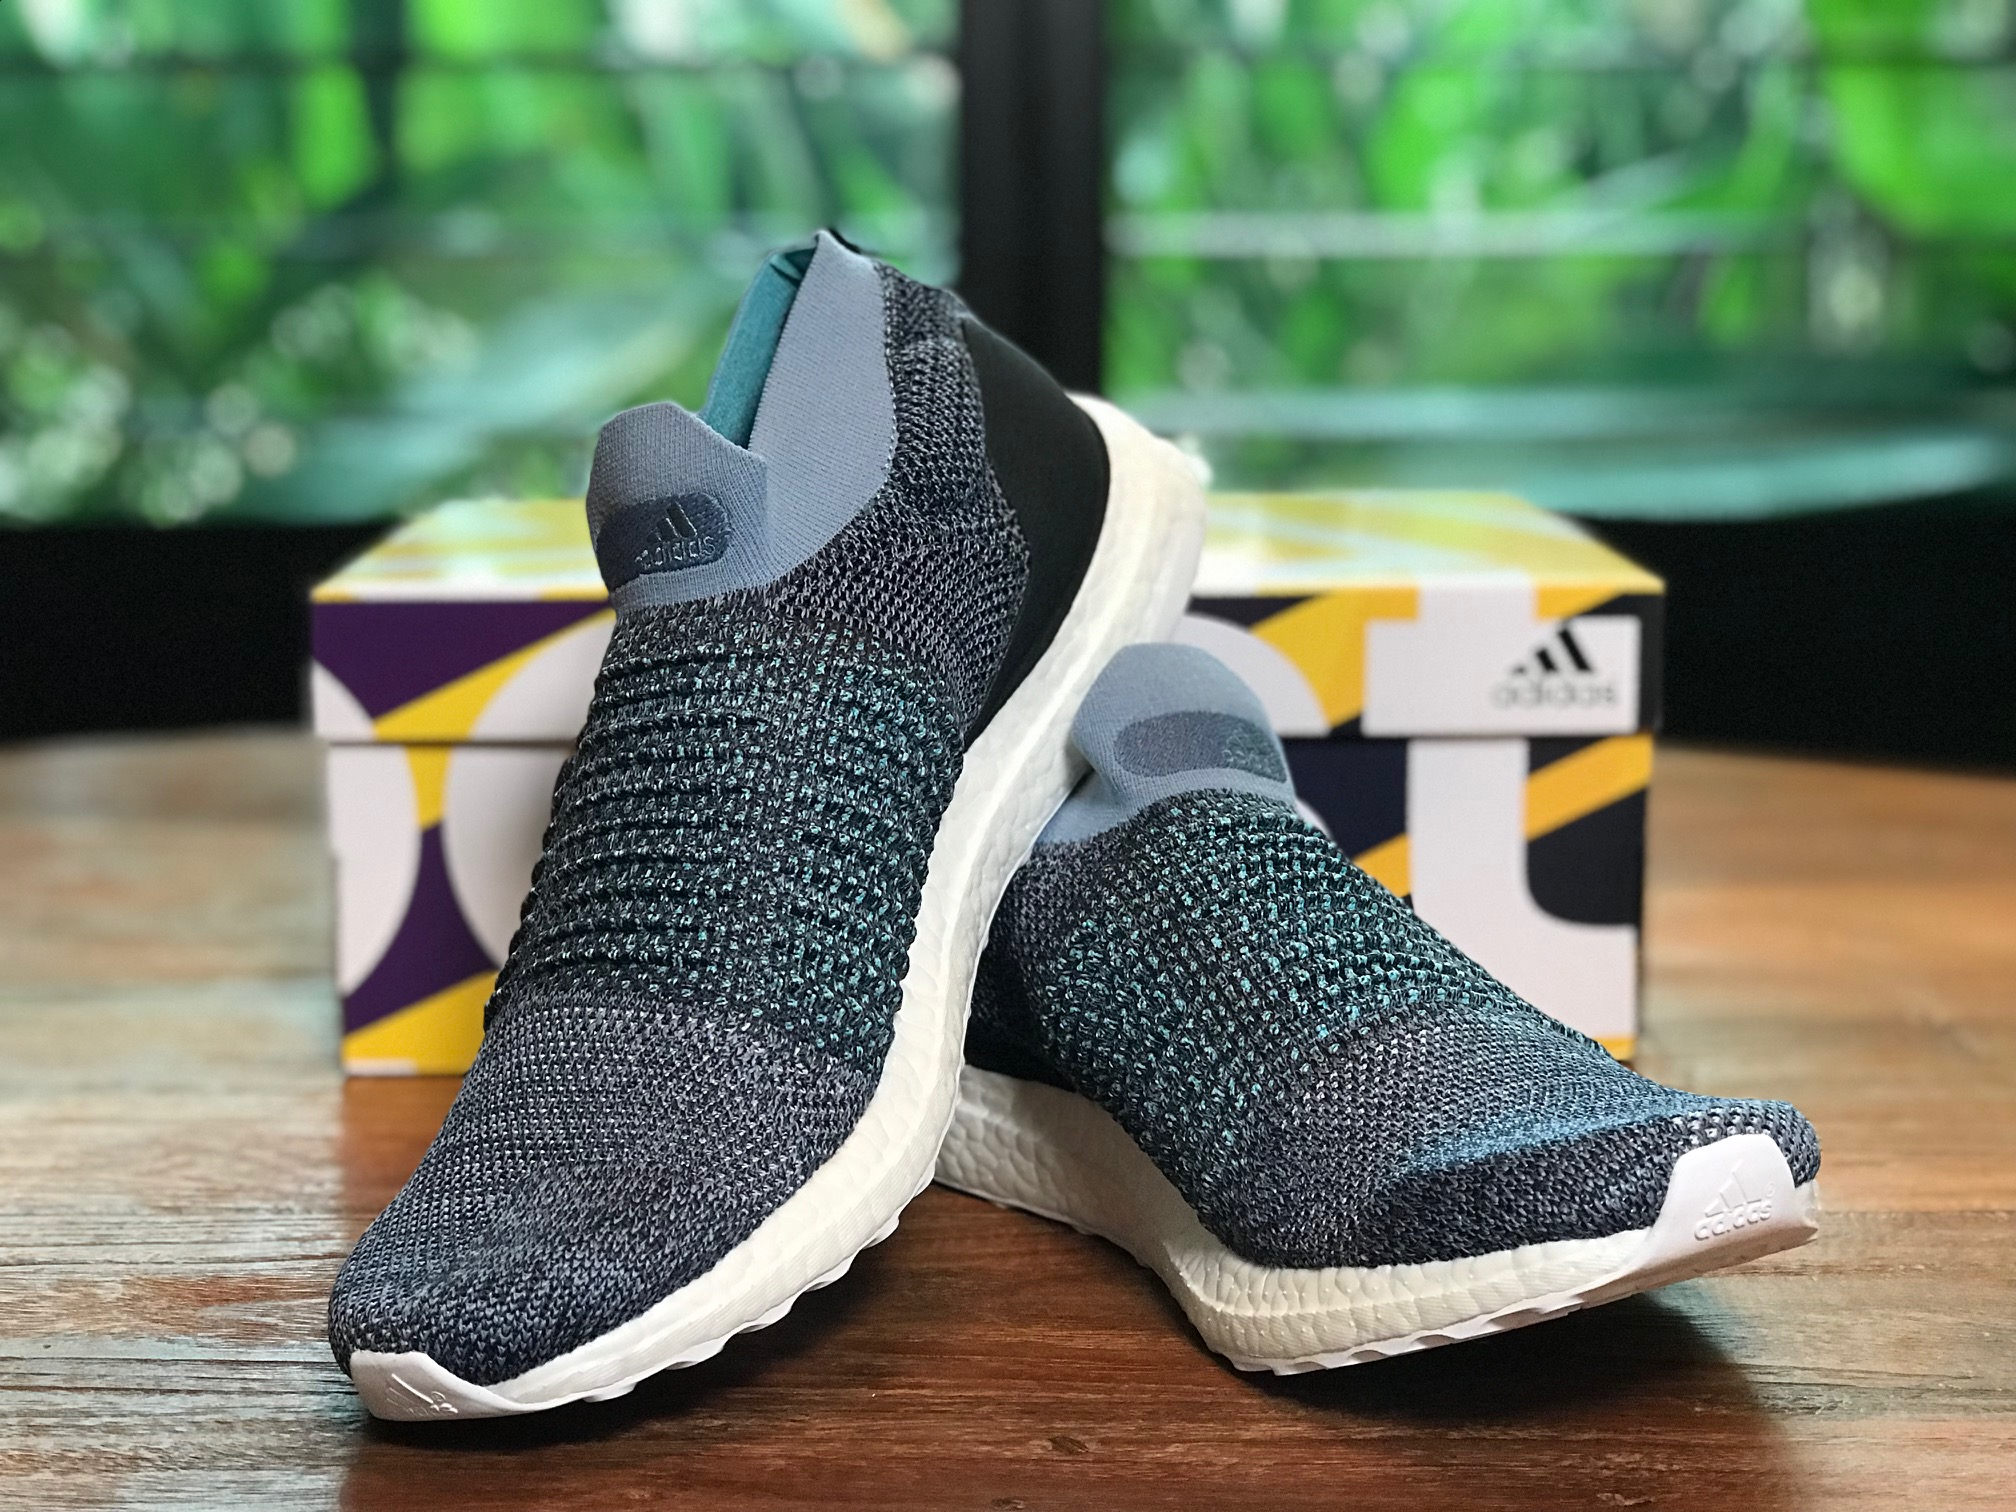 78c2109e8502e Adidas Parley running the show in 2019! Adidas Ultraboost Laceless Parley